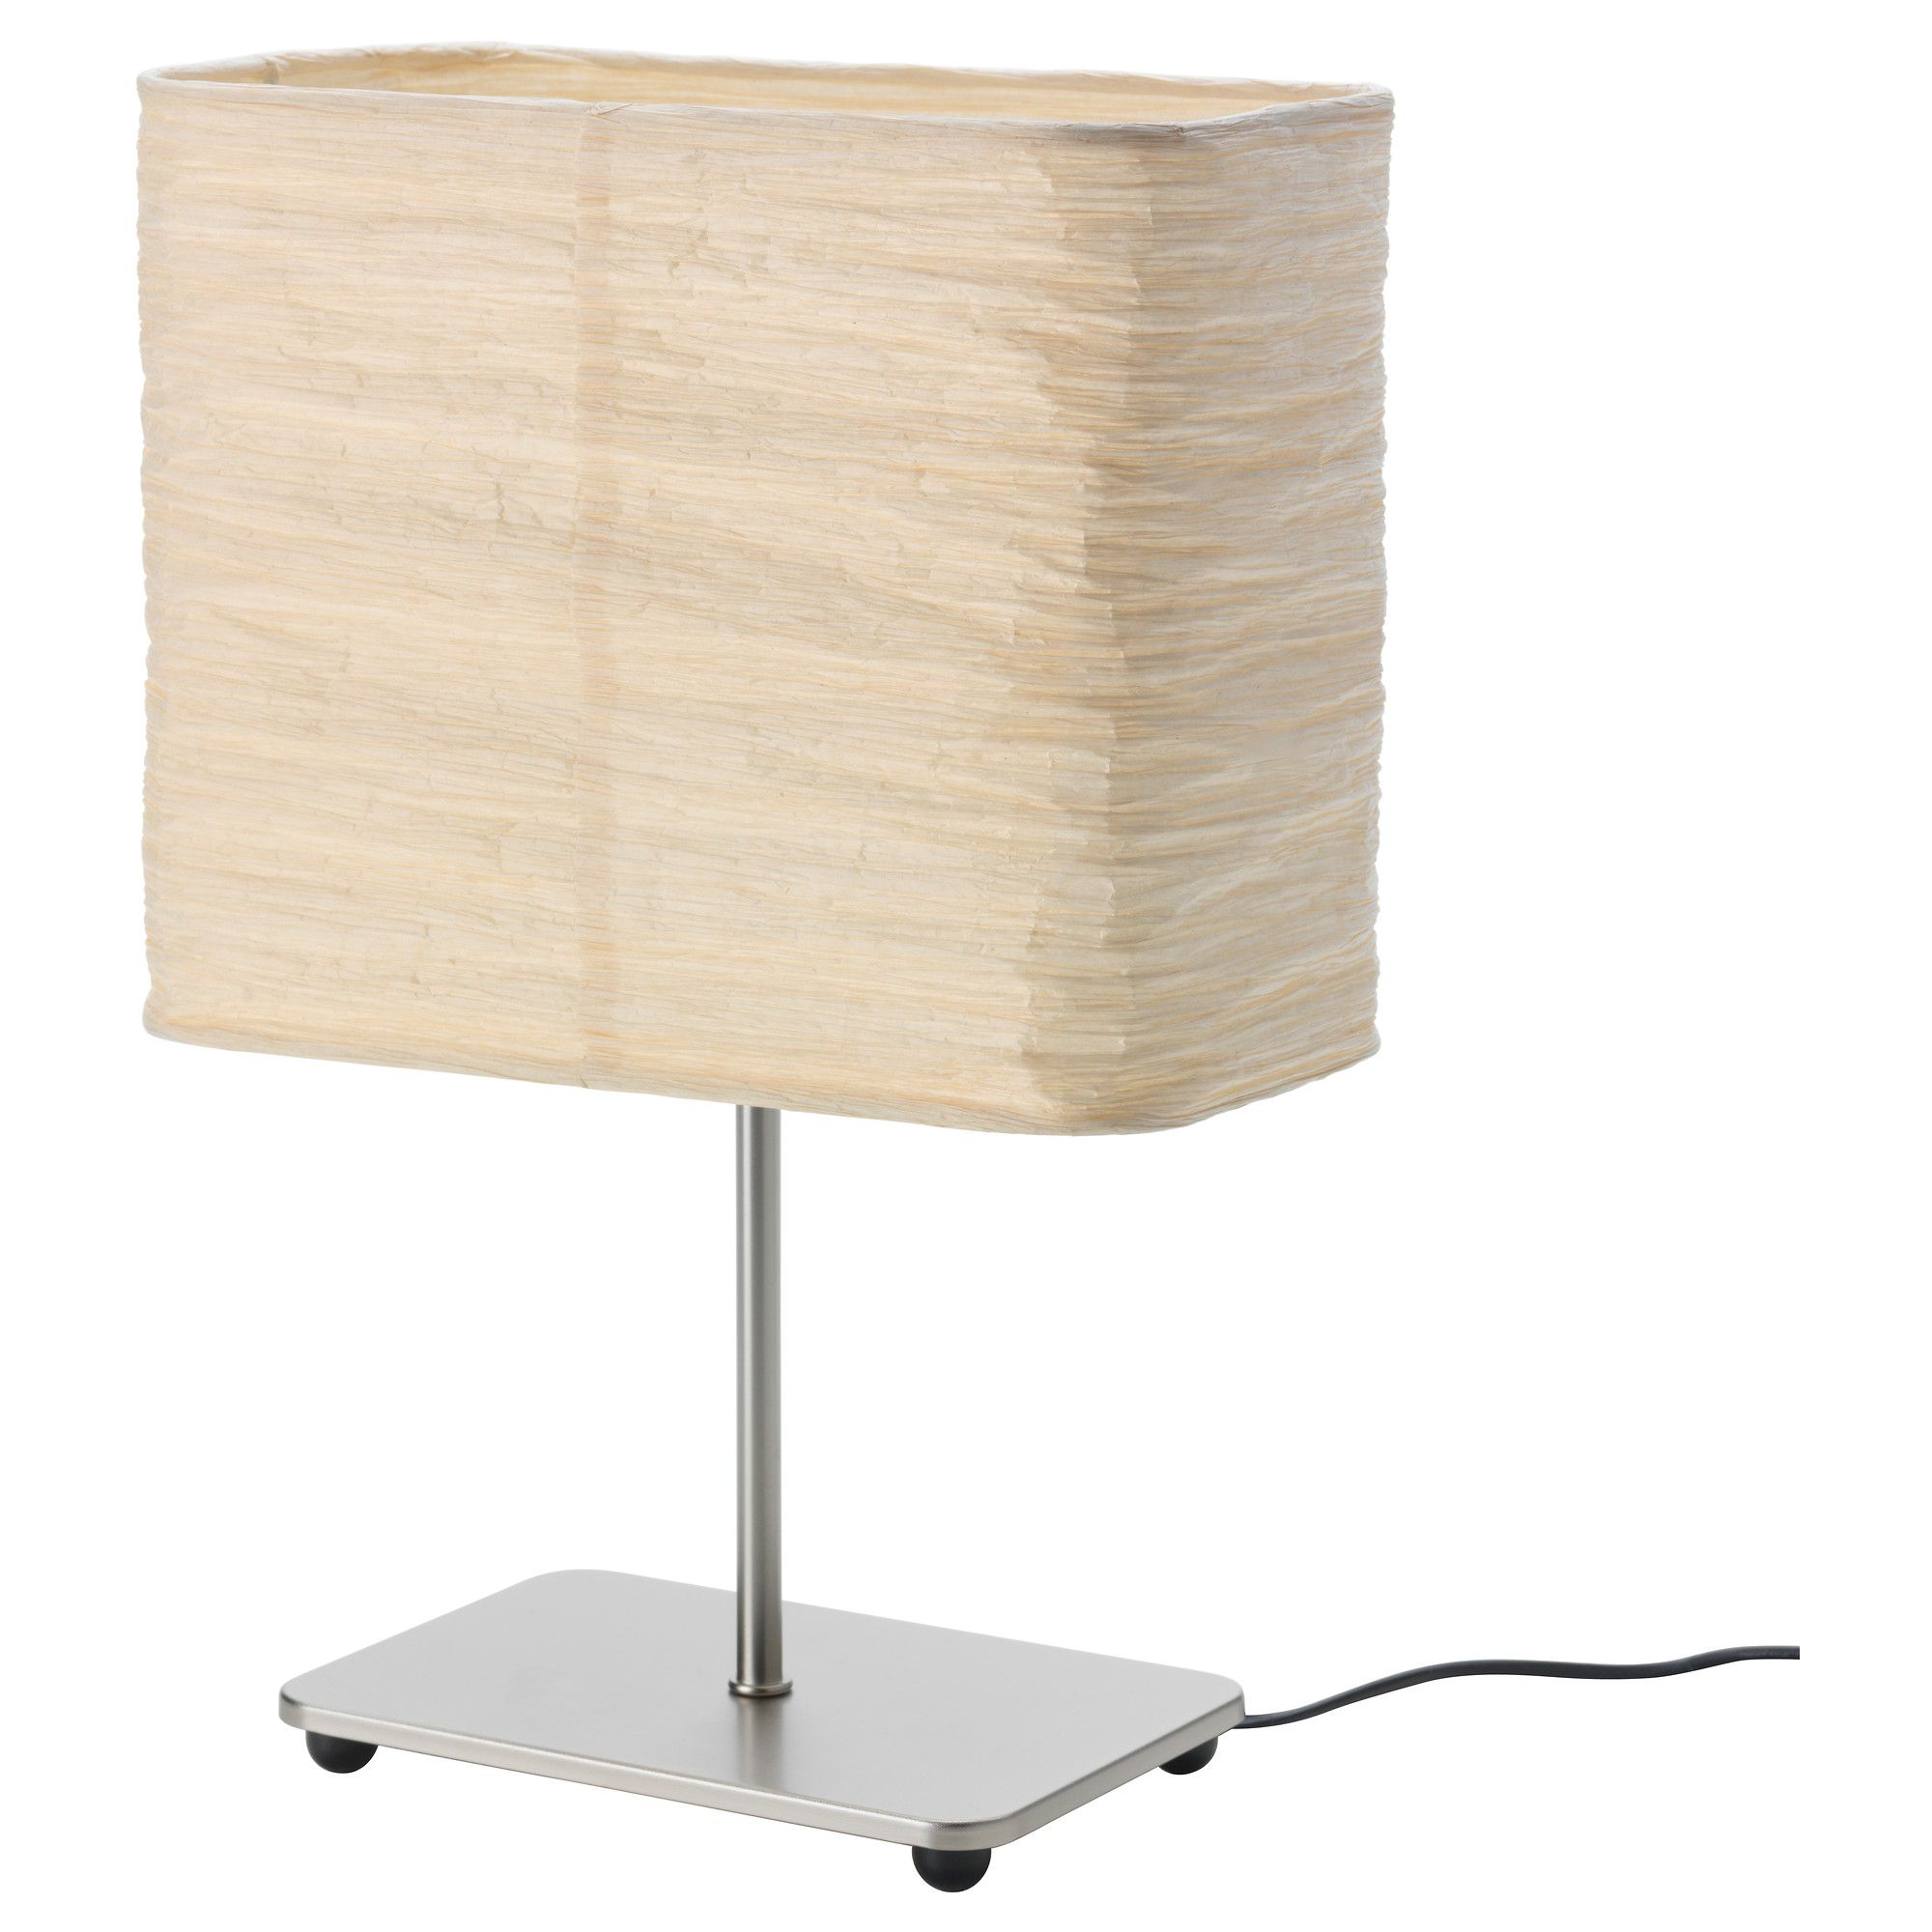 Ikea Us Furniture And Home Furnishings Table Lamp Lamp Table Lamps For Bedroom